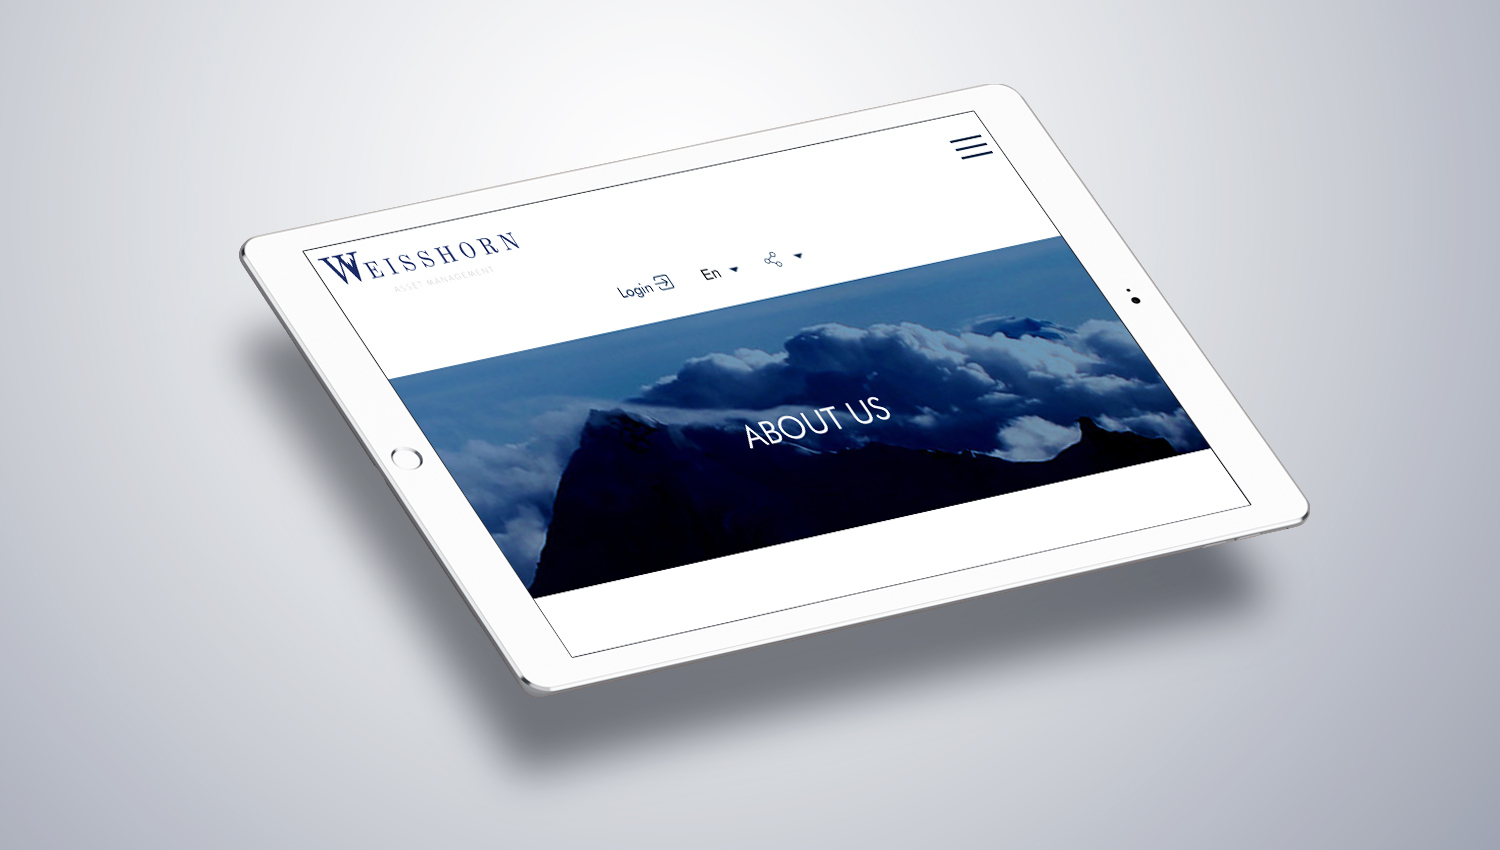 Web design tablet view for Weisshorn 2 by 8 Ways